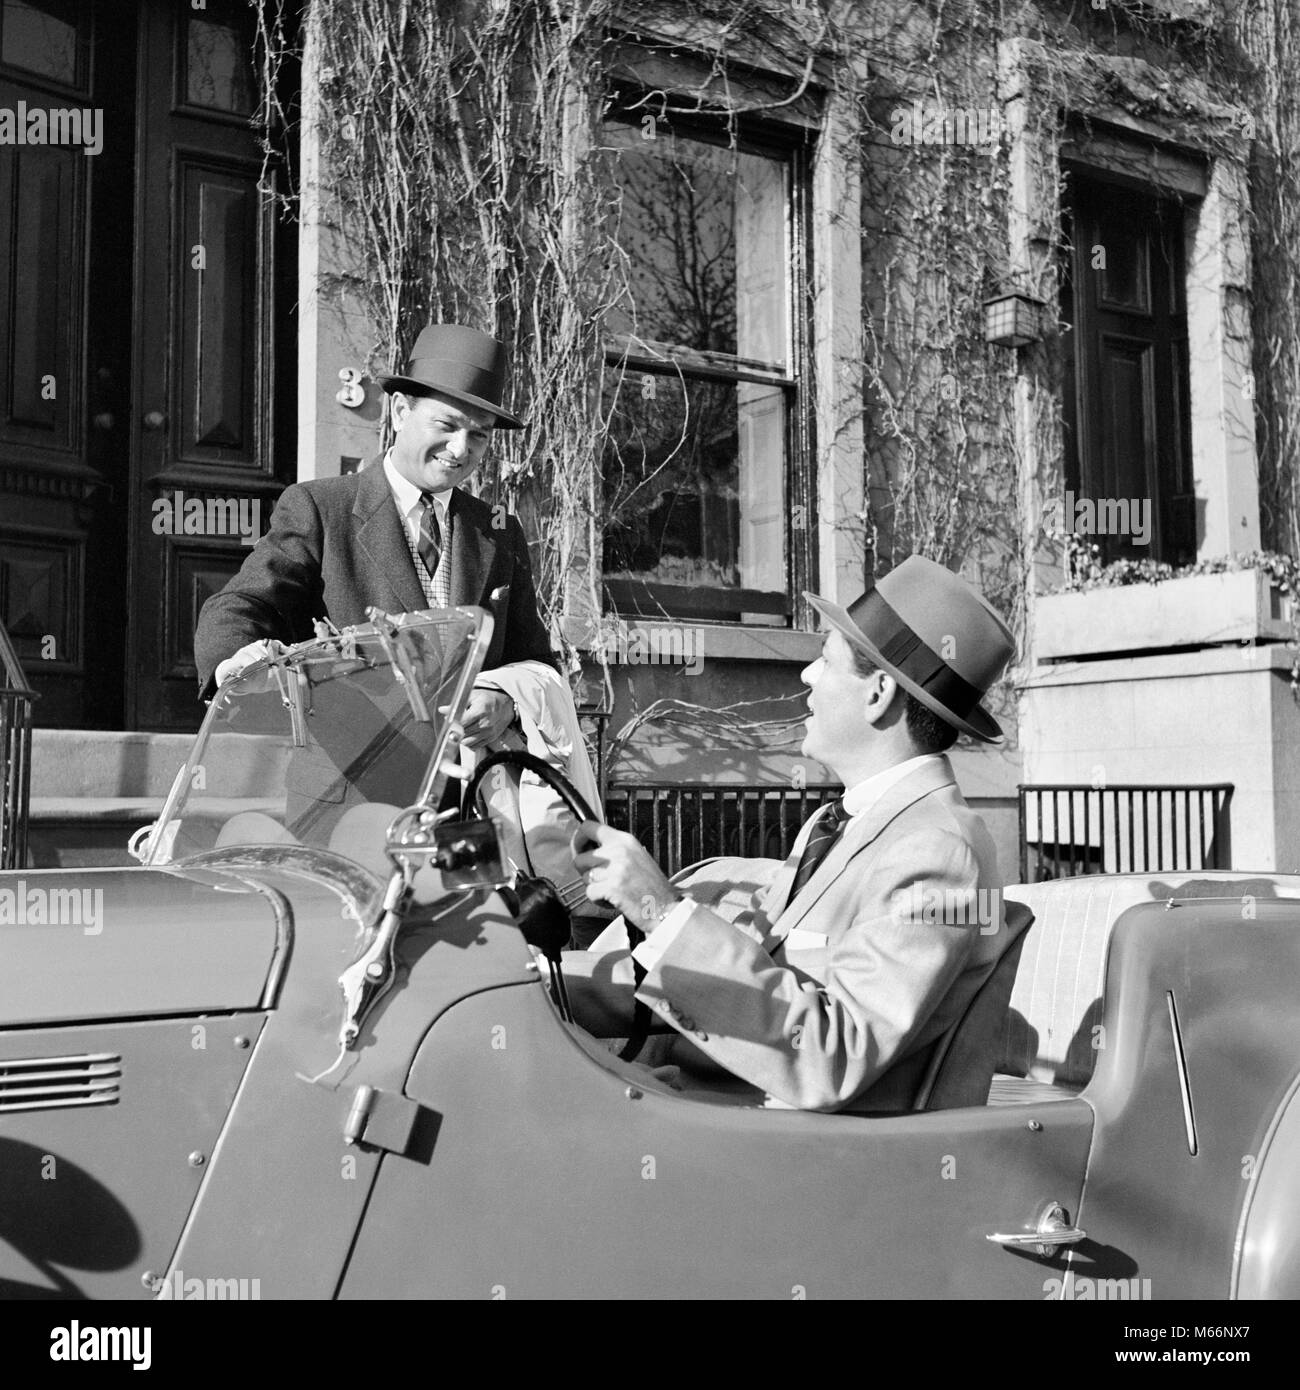 1950s 1960s TWO BUSINESSMEN TALKING ON STREET ONE SITTING IN SPORTS CAR CONVERTIBLE TWO SEATER - m2226 CRR001 HARS - Stock Image